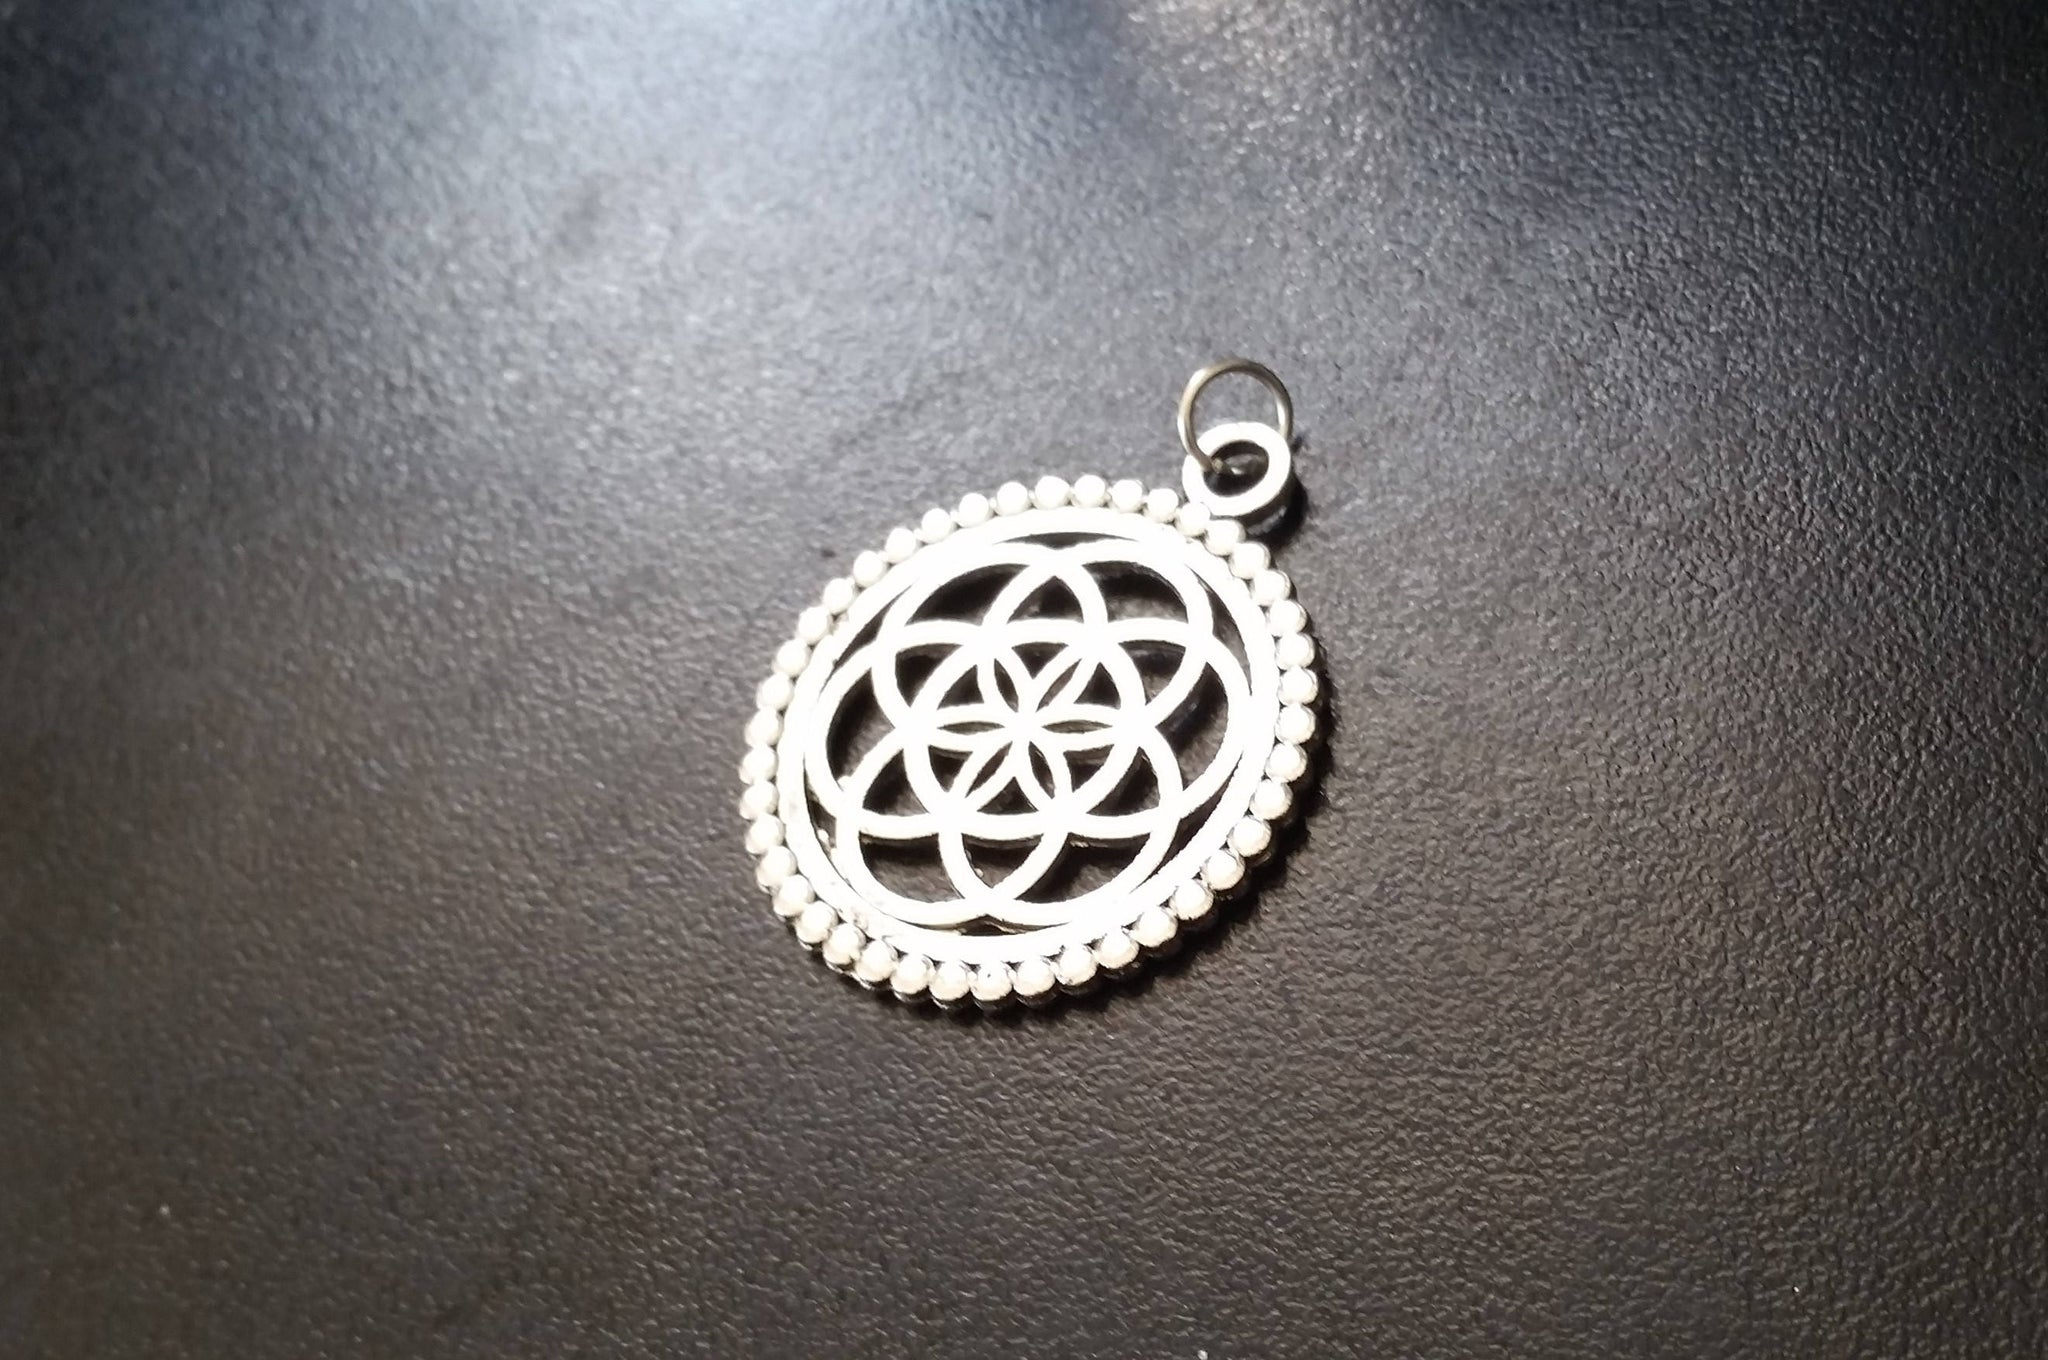 SEED OF LIFE Silver Pendant - Necklace, Tribal Necklace, Flower of Life Necklace, Tribal Necklace, Boho Sacred Geometry Necklace, Gypsy